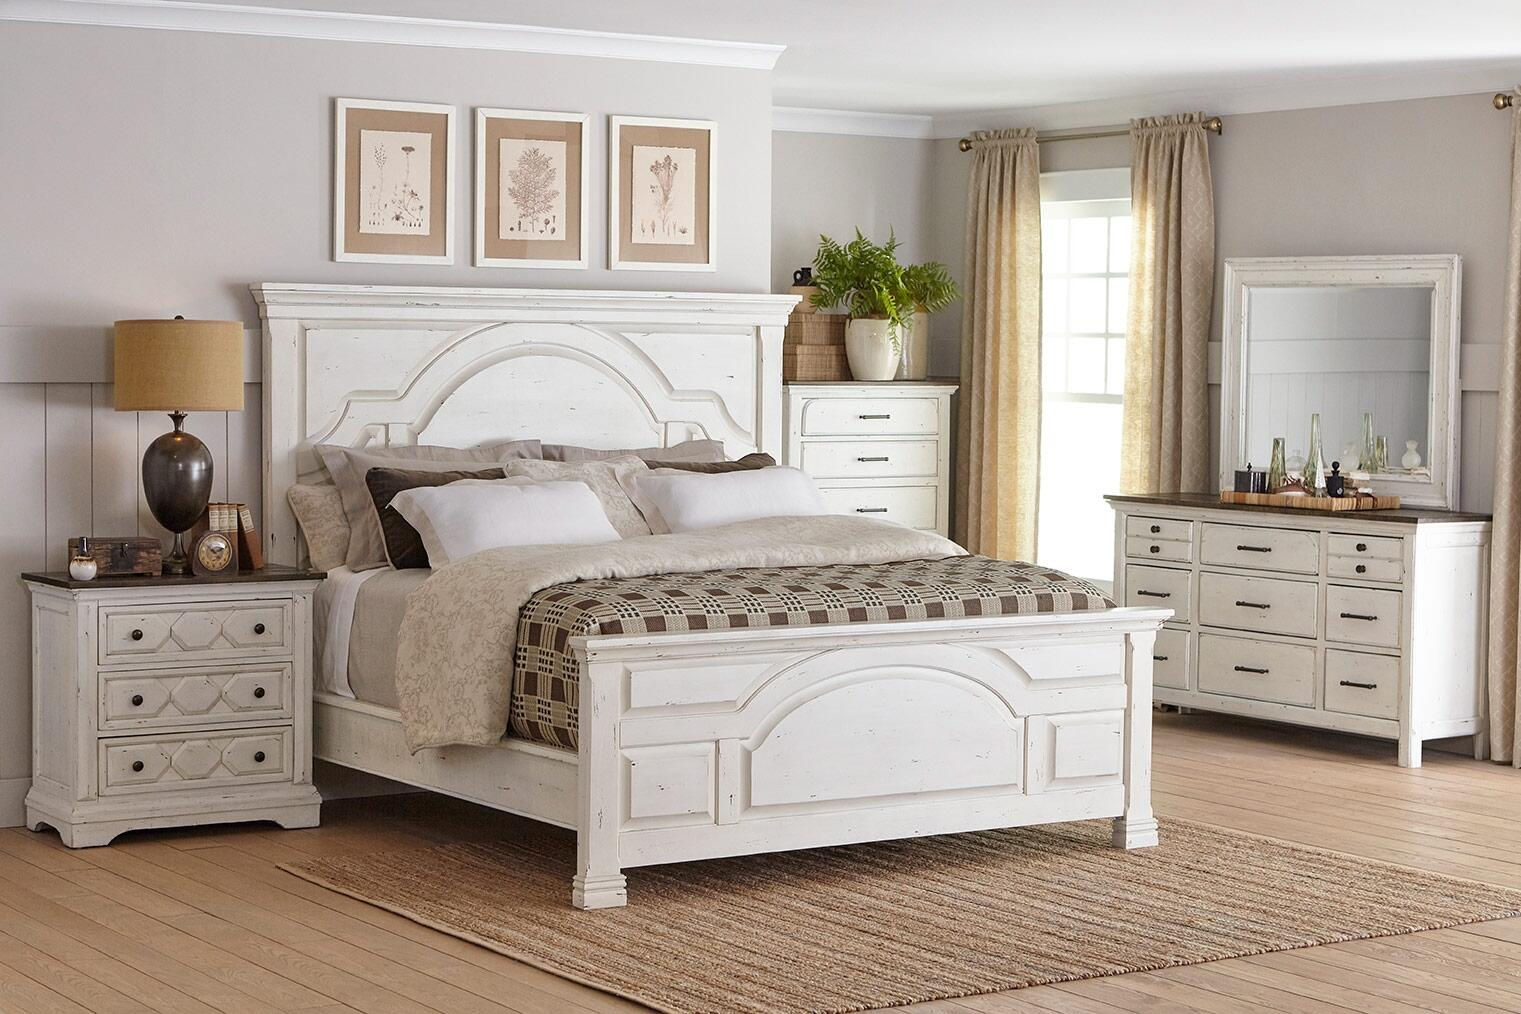 Coaster Celeste 5 Piece Queen Size Bedroom Set